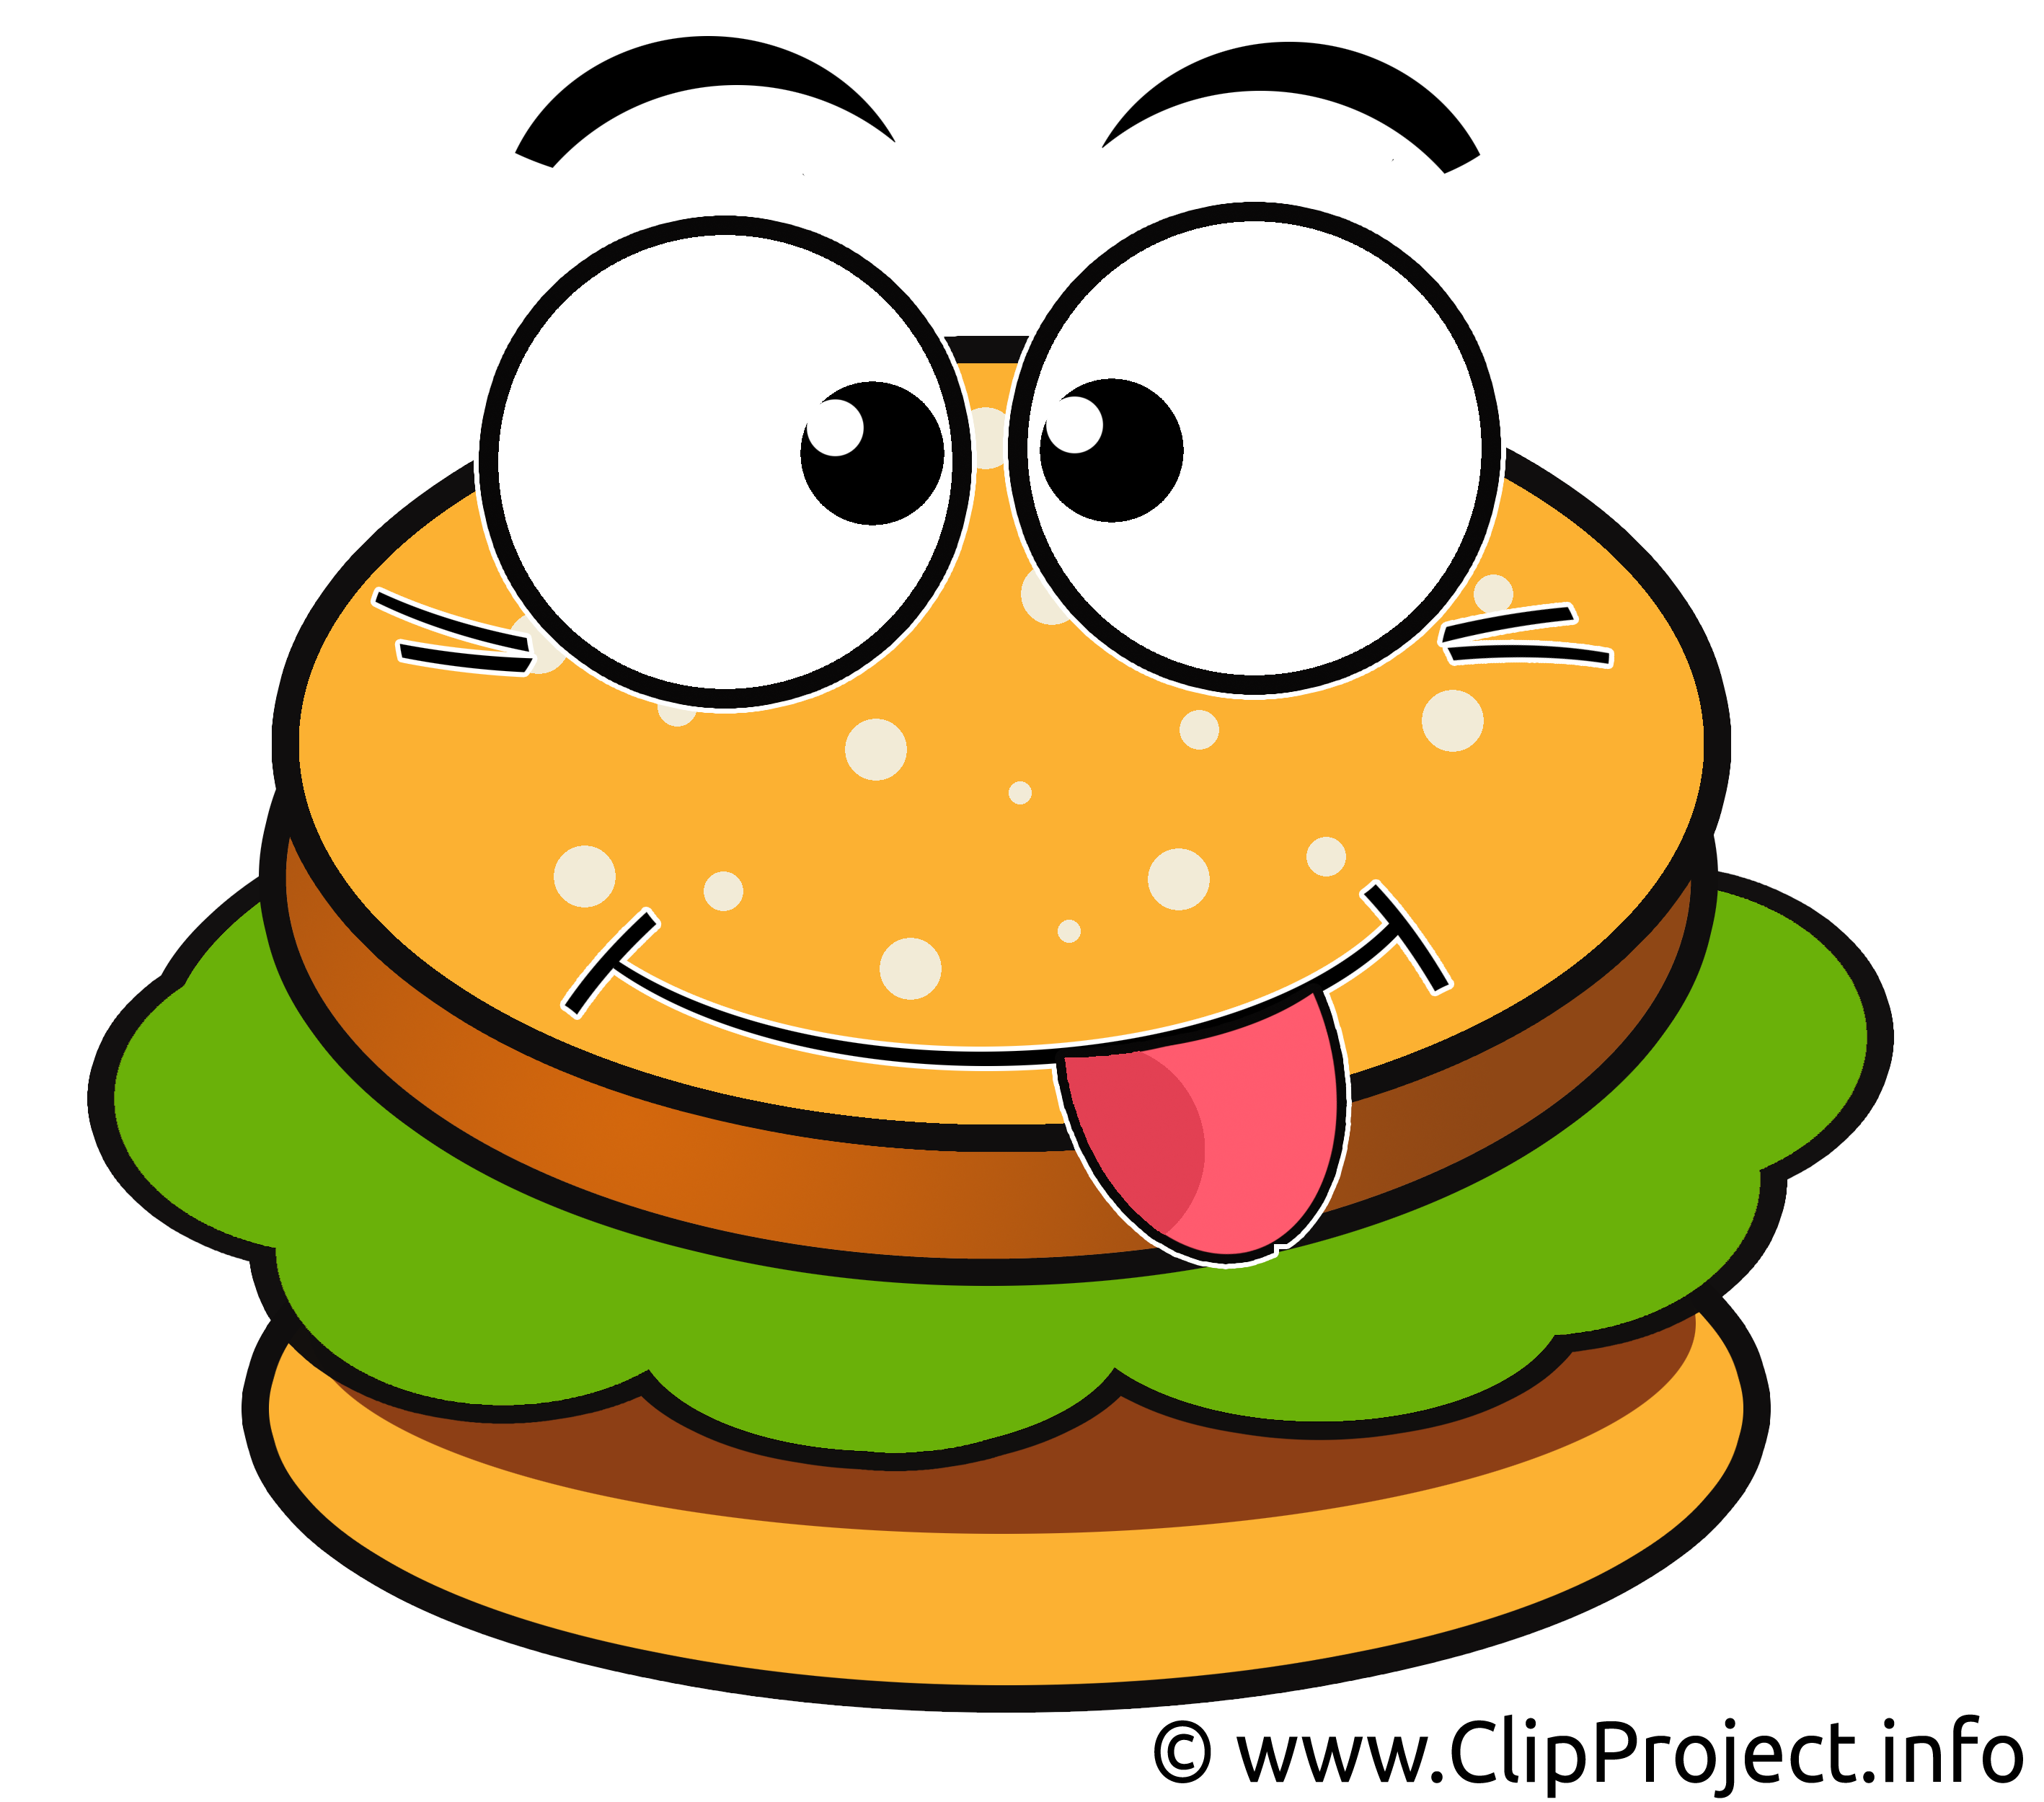 Hamburger clipart comic. Burger cartoon pencil and